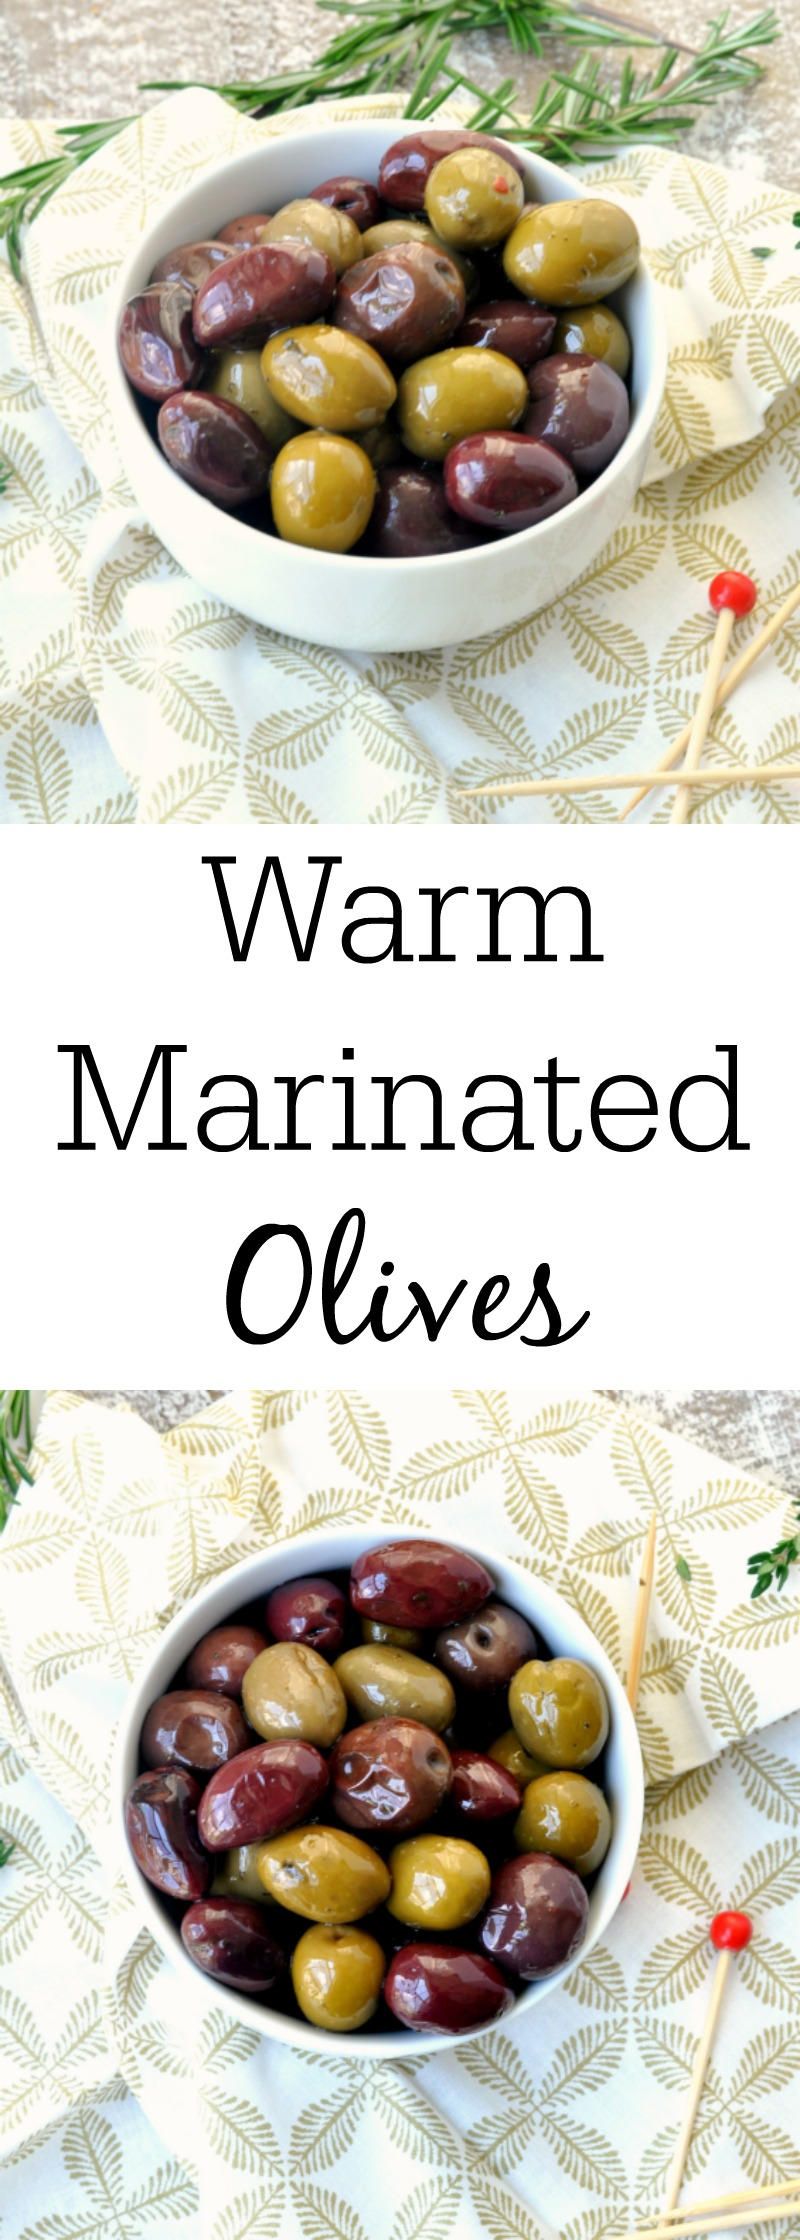 Warm Marinated Olives - The perfect party appetizer